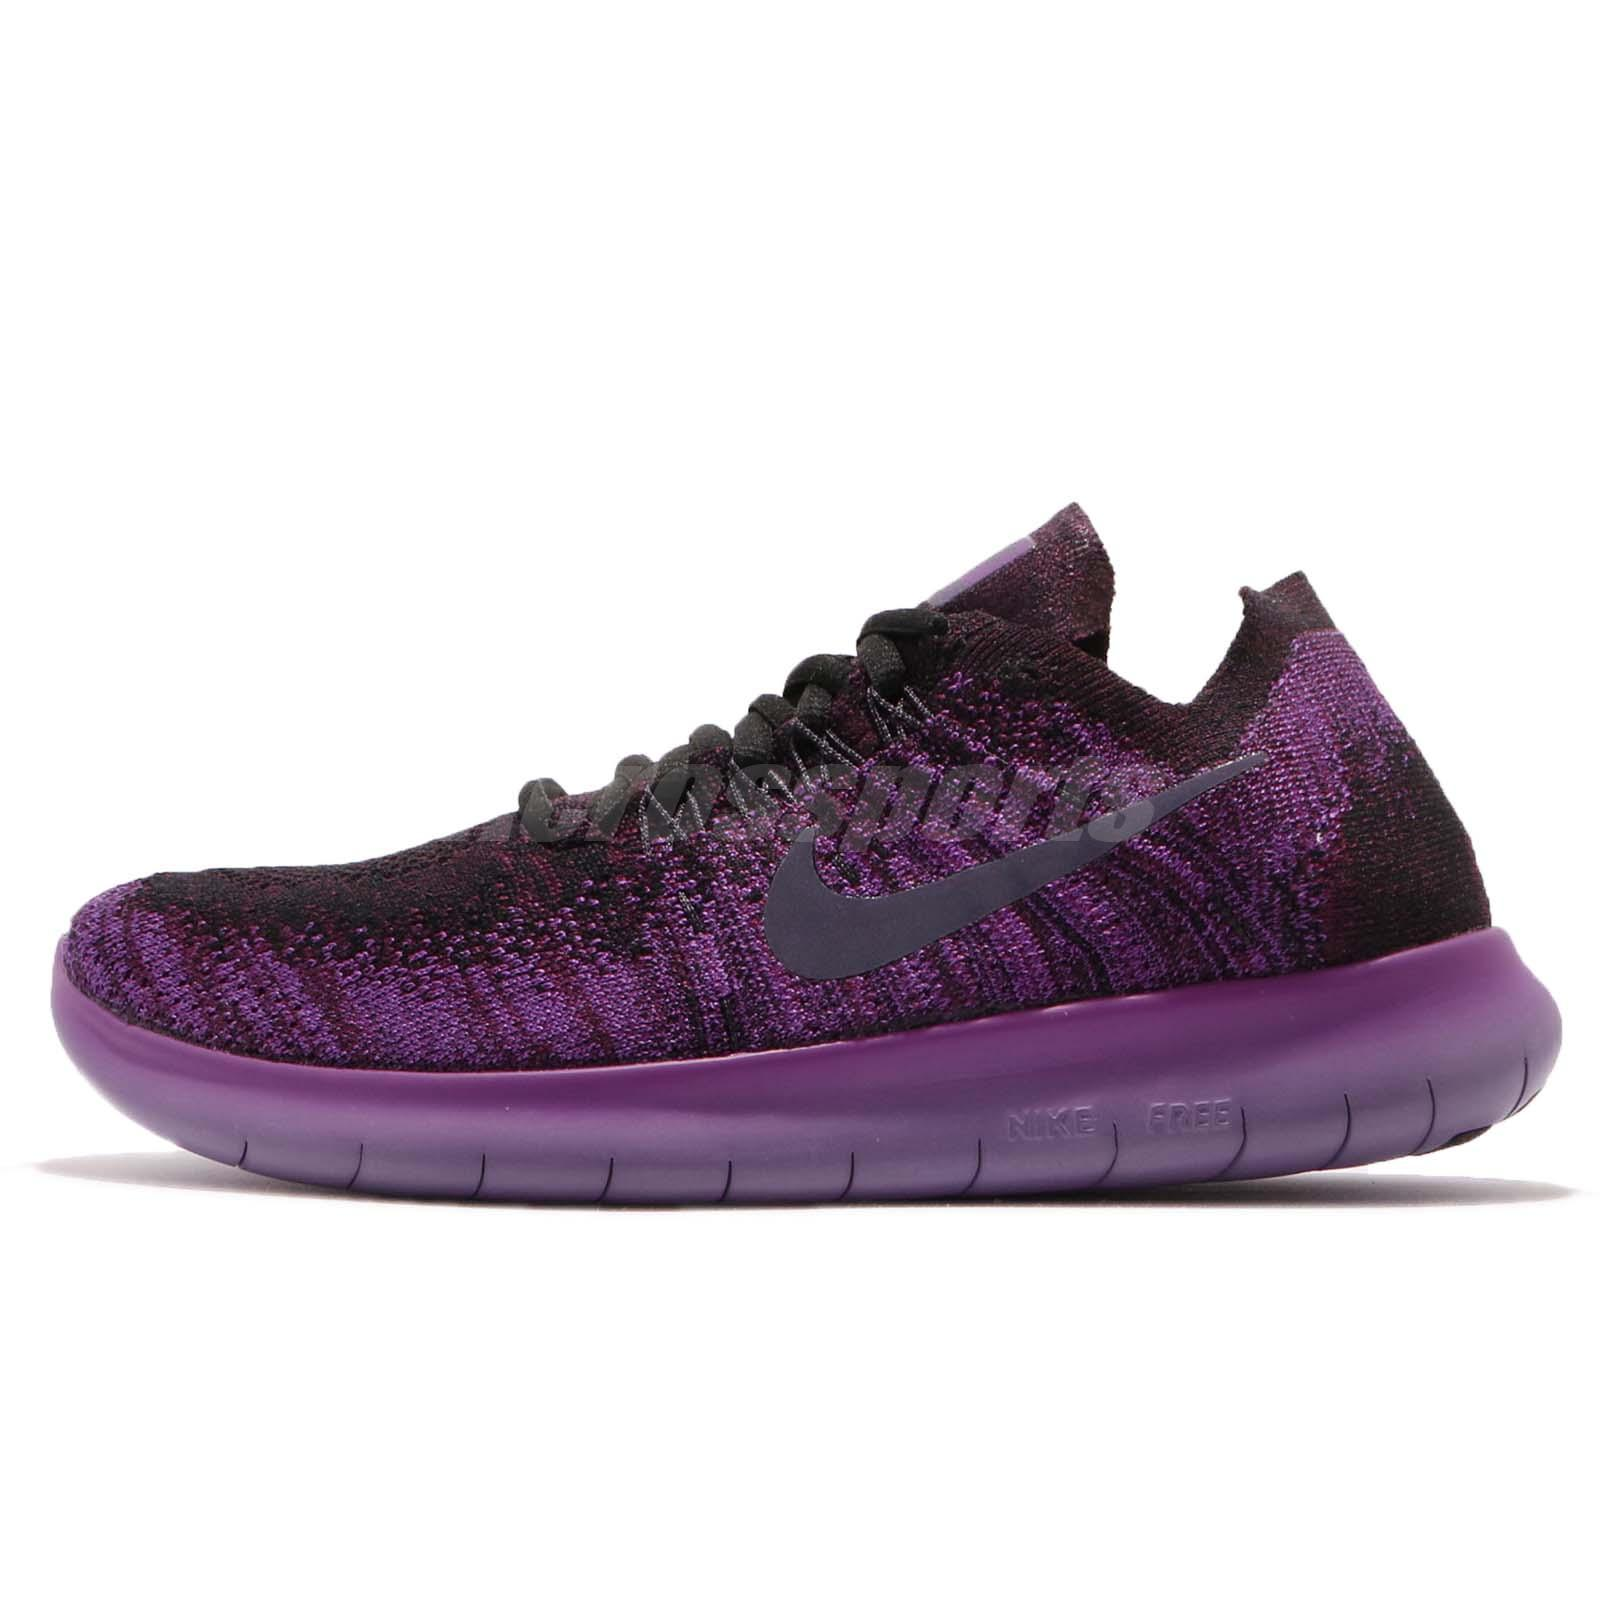 huge selection of 224a5 0c3e2 ... where can i buy nike wmns free rn flyknit 2017 purple black reflective  running shoes 880844